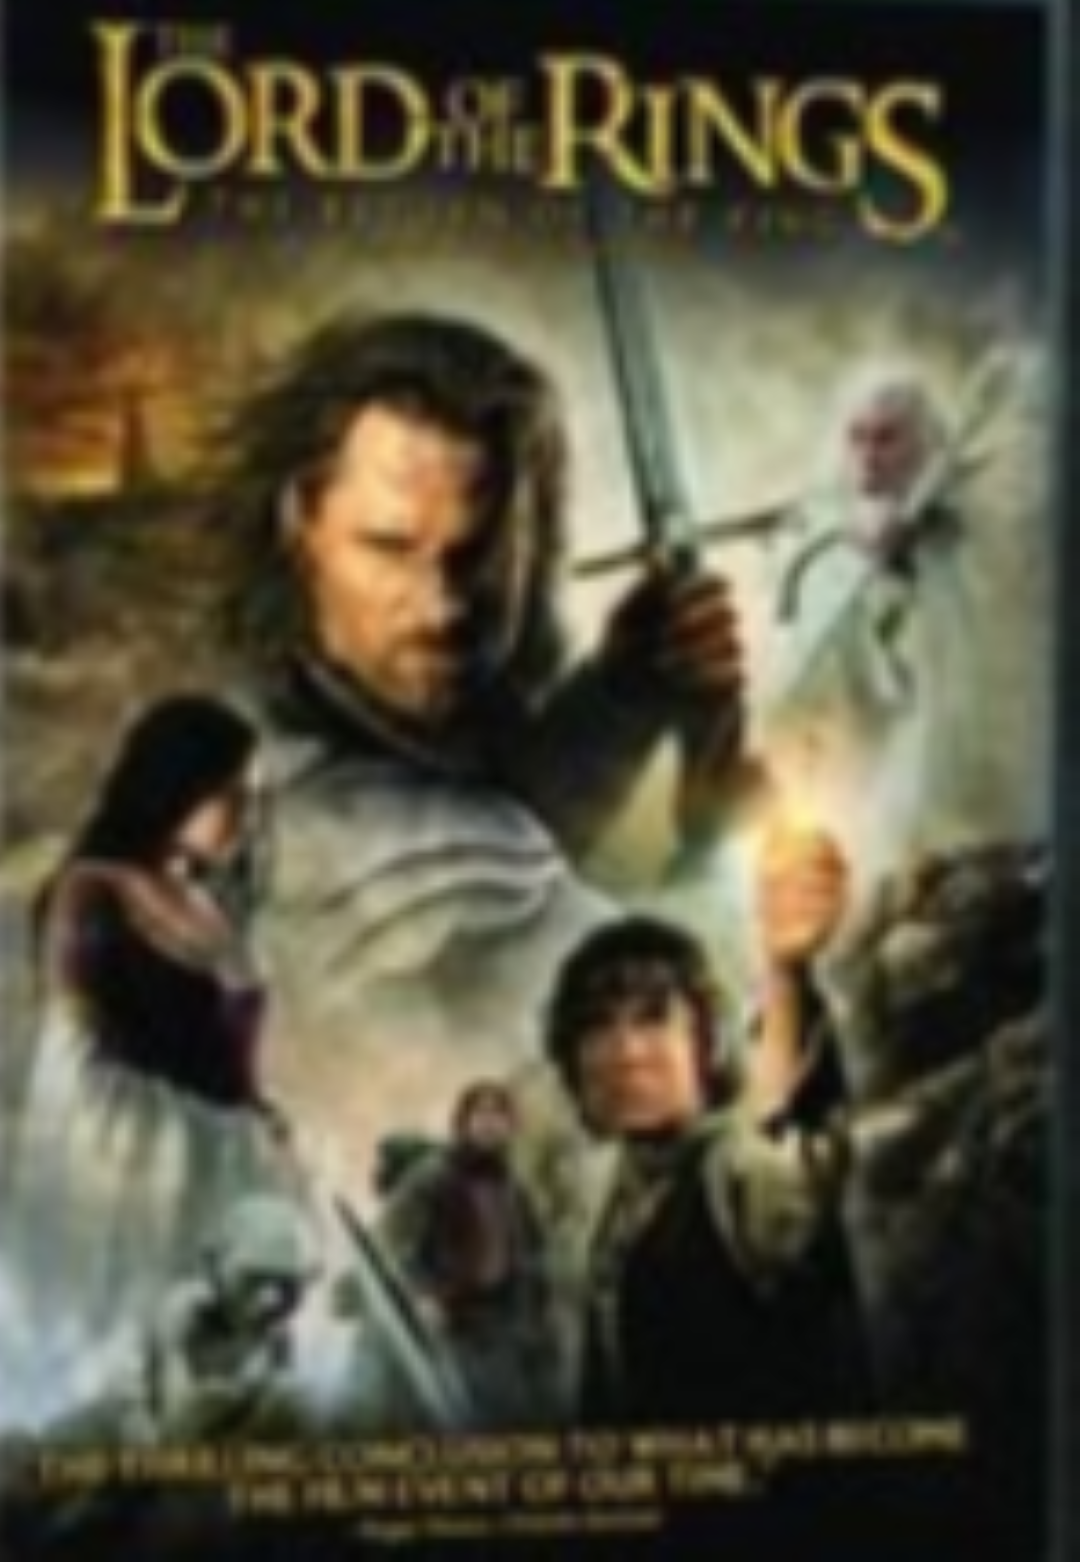 The Lord of the Rings: Return of the King Dvd